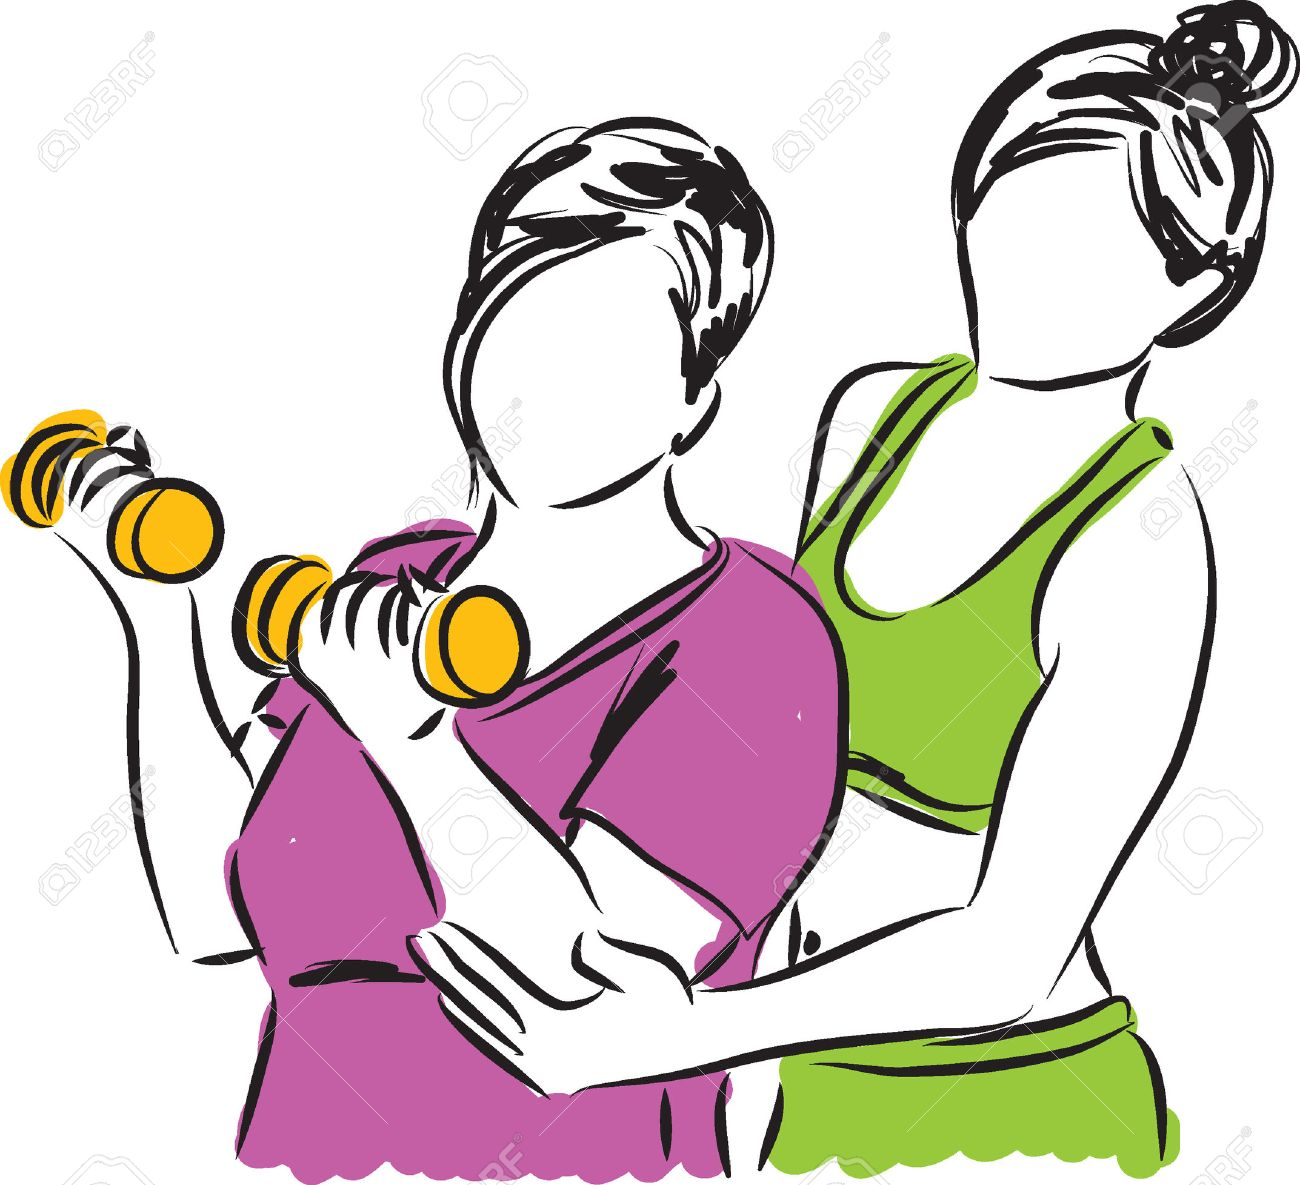 Personal trainer clipart 1 » Clipart Station.